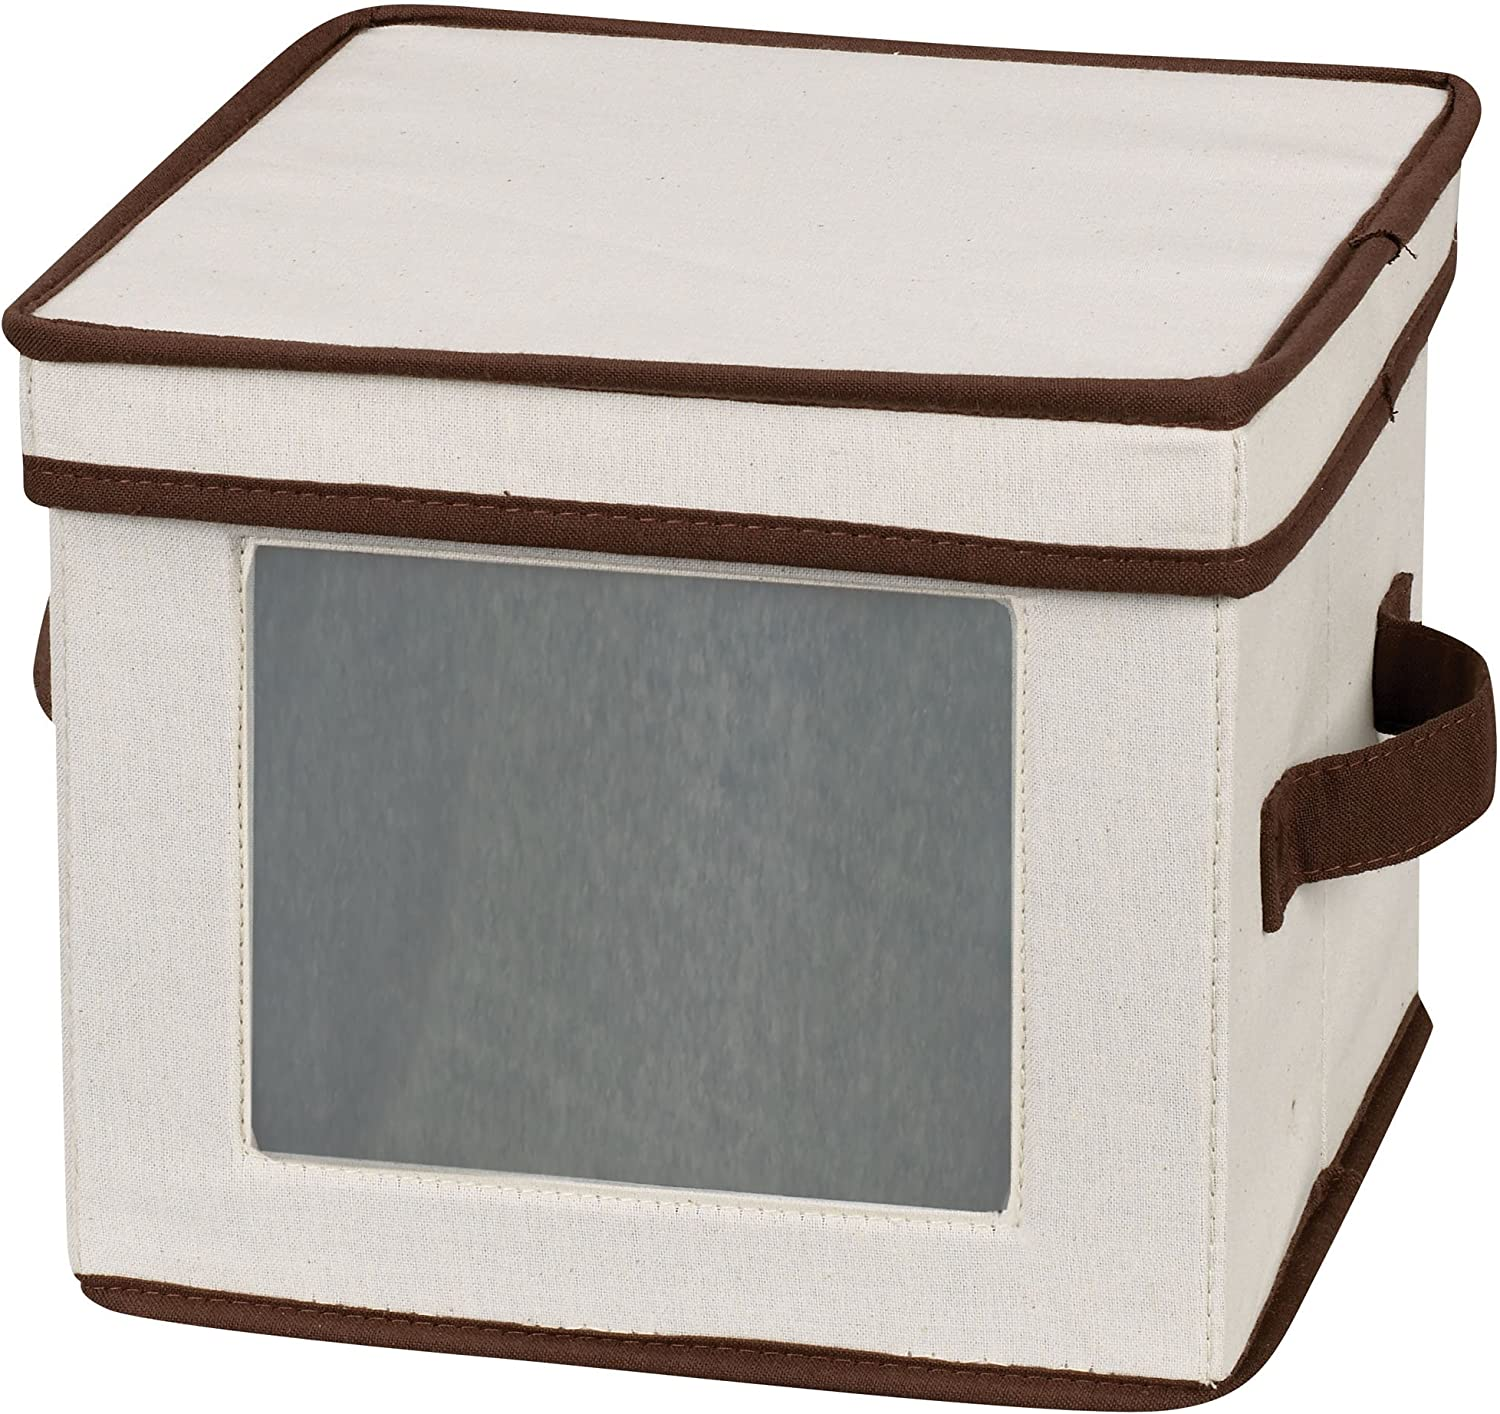 Household Essentials Natural 532 Dinnerware Box with Lid and Handles   Storage Bin for Dessert Plates or Bowls Canvas with Brown Trim